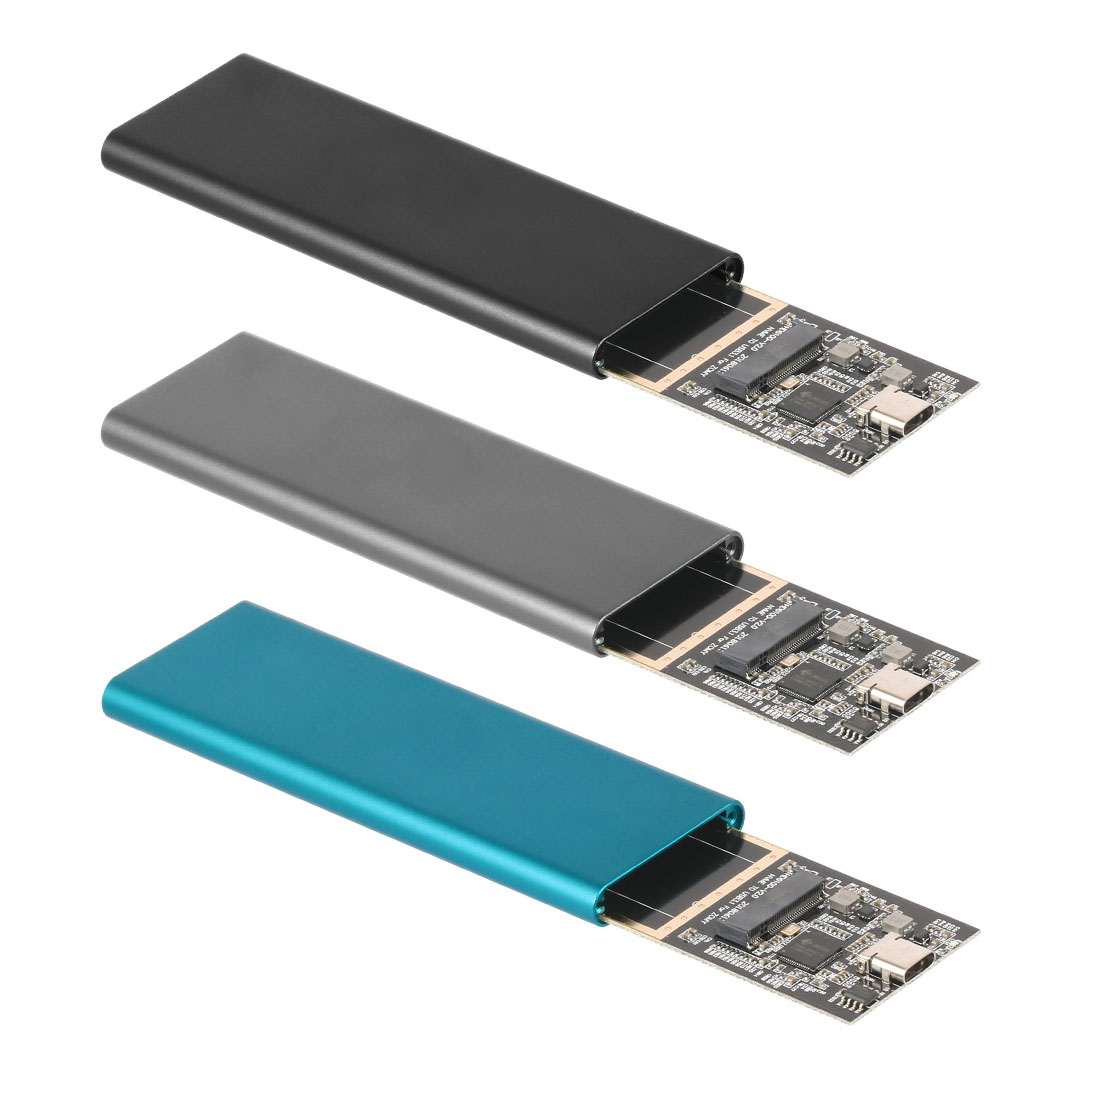 USB3.1 Type-C To M.2 NVMe PCIE SSD Box Solid State Drive HDD Enclosure Case 2 Cables 10Gbps M2 PCI-E M/M&B Key Support 4TB 2280